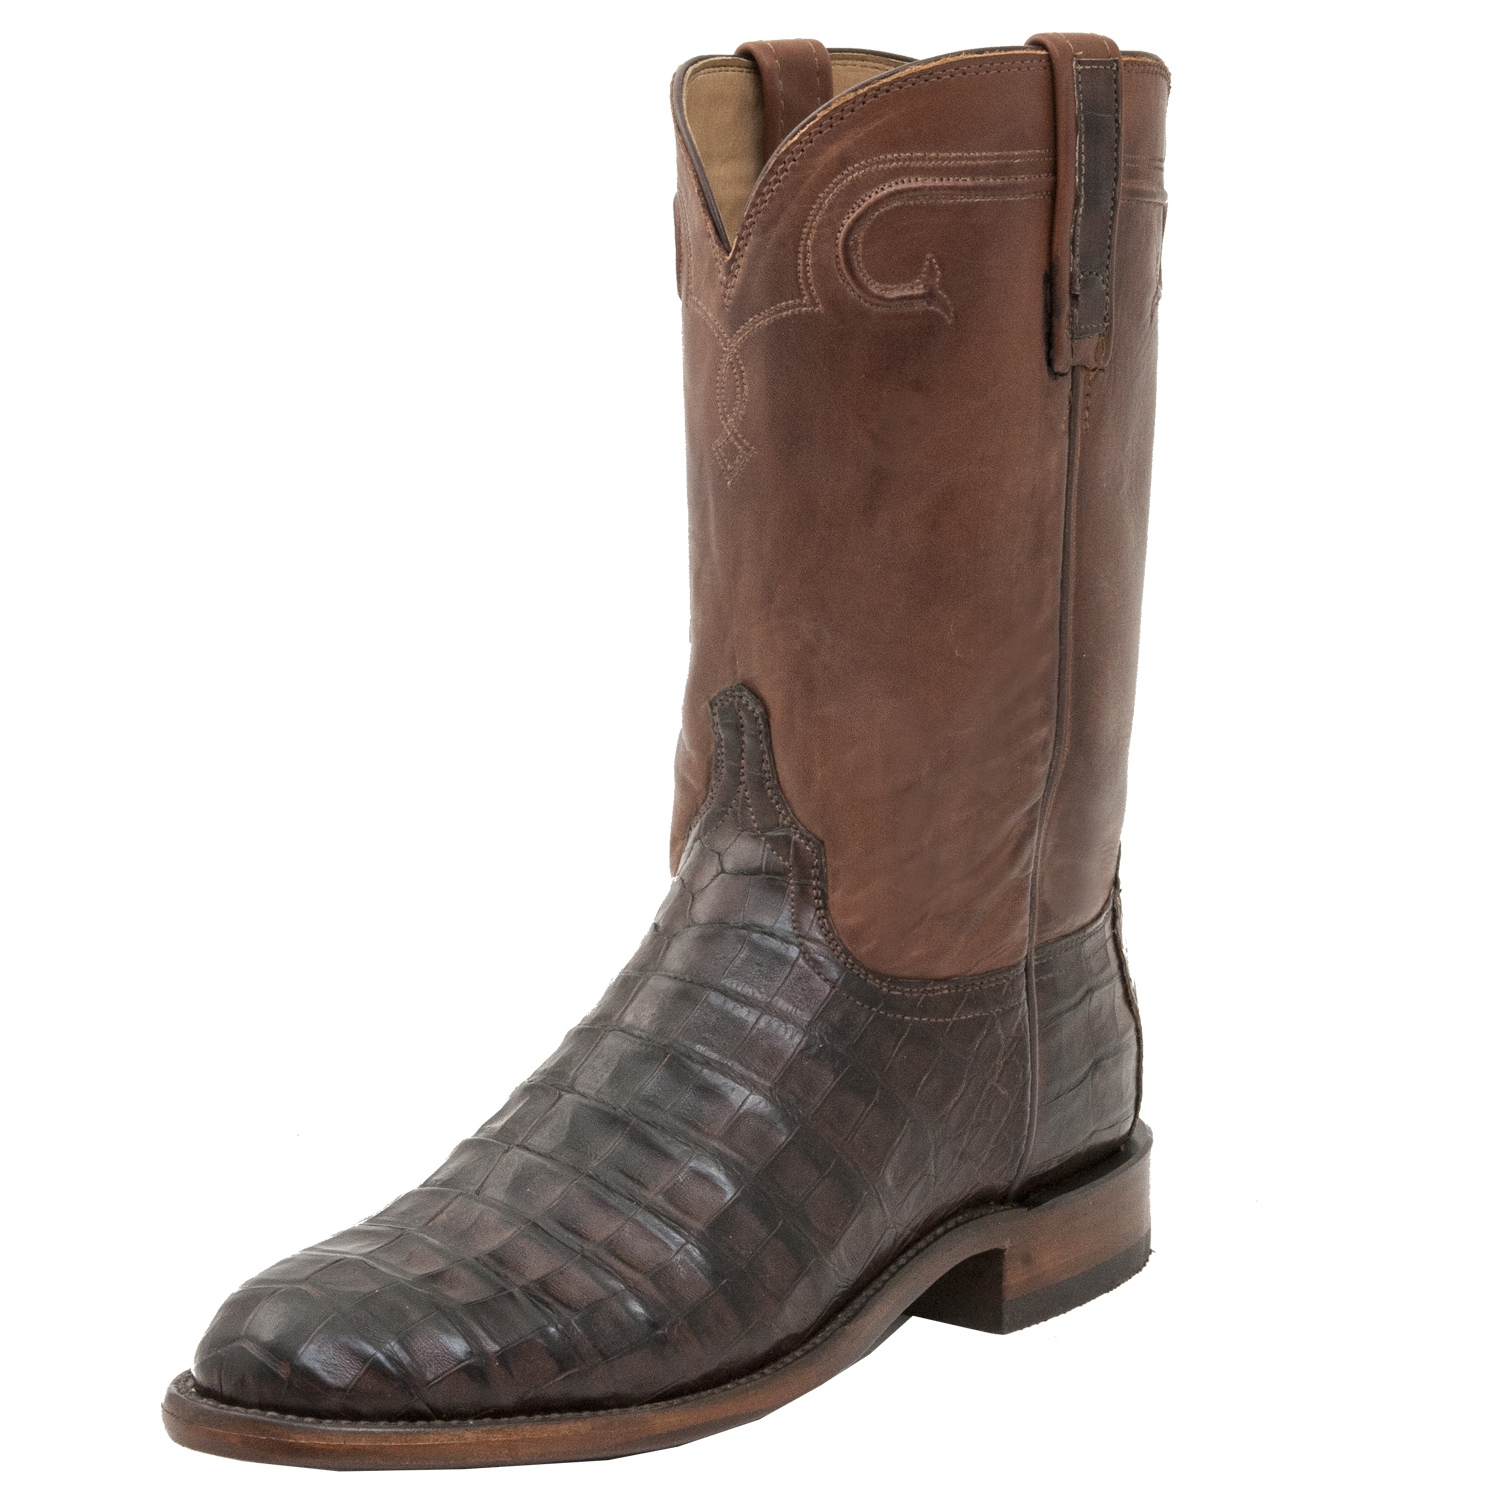 Lucchese Boots Mens Images Ideas Furthermore